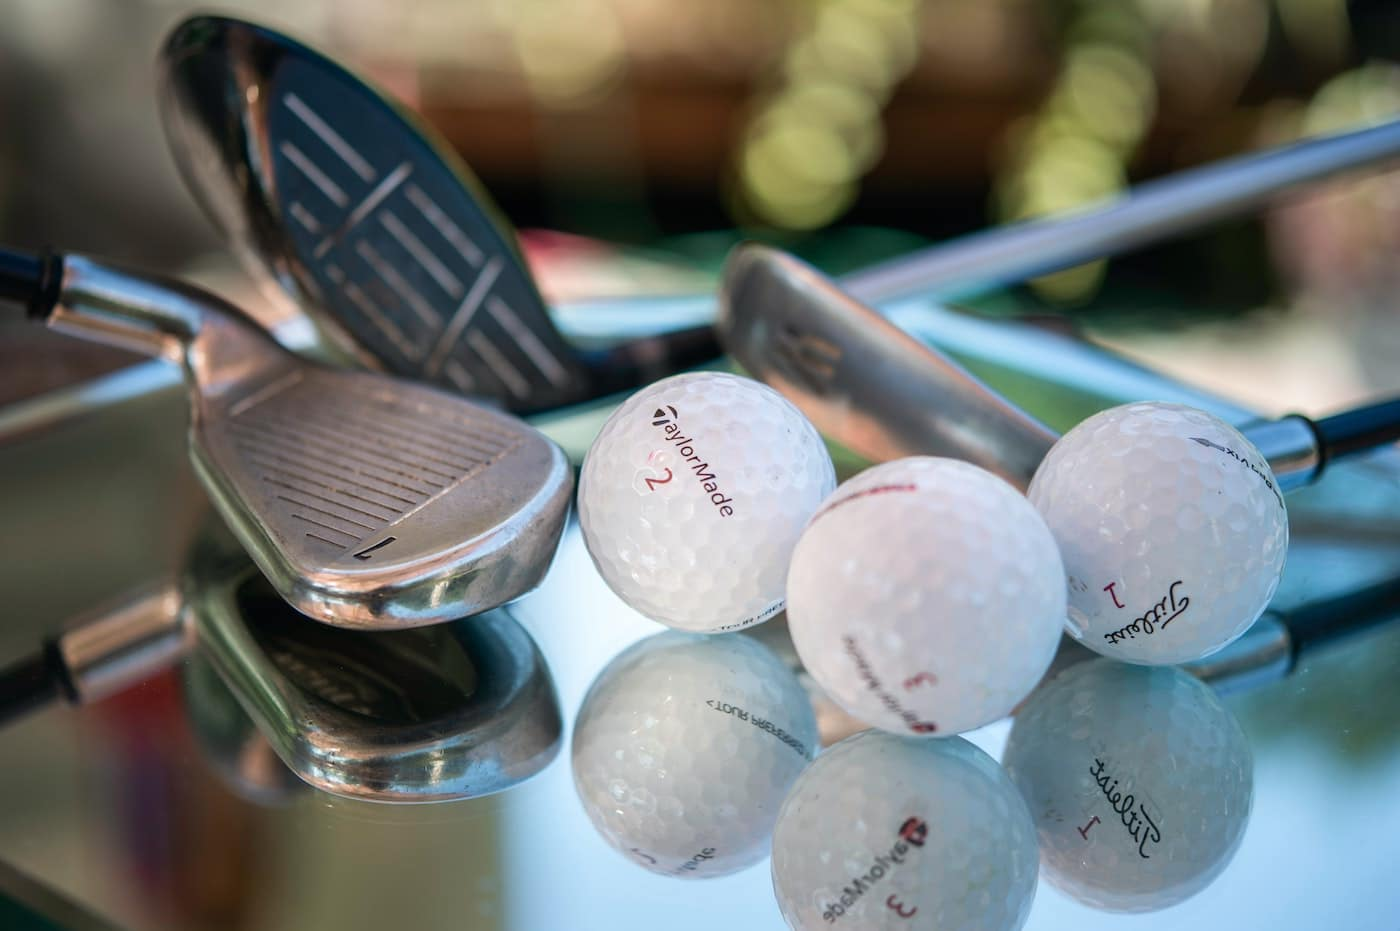 How To Clean Your Golf Equipment